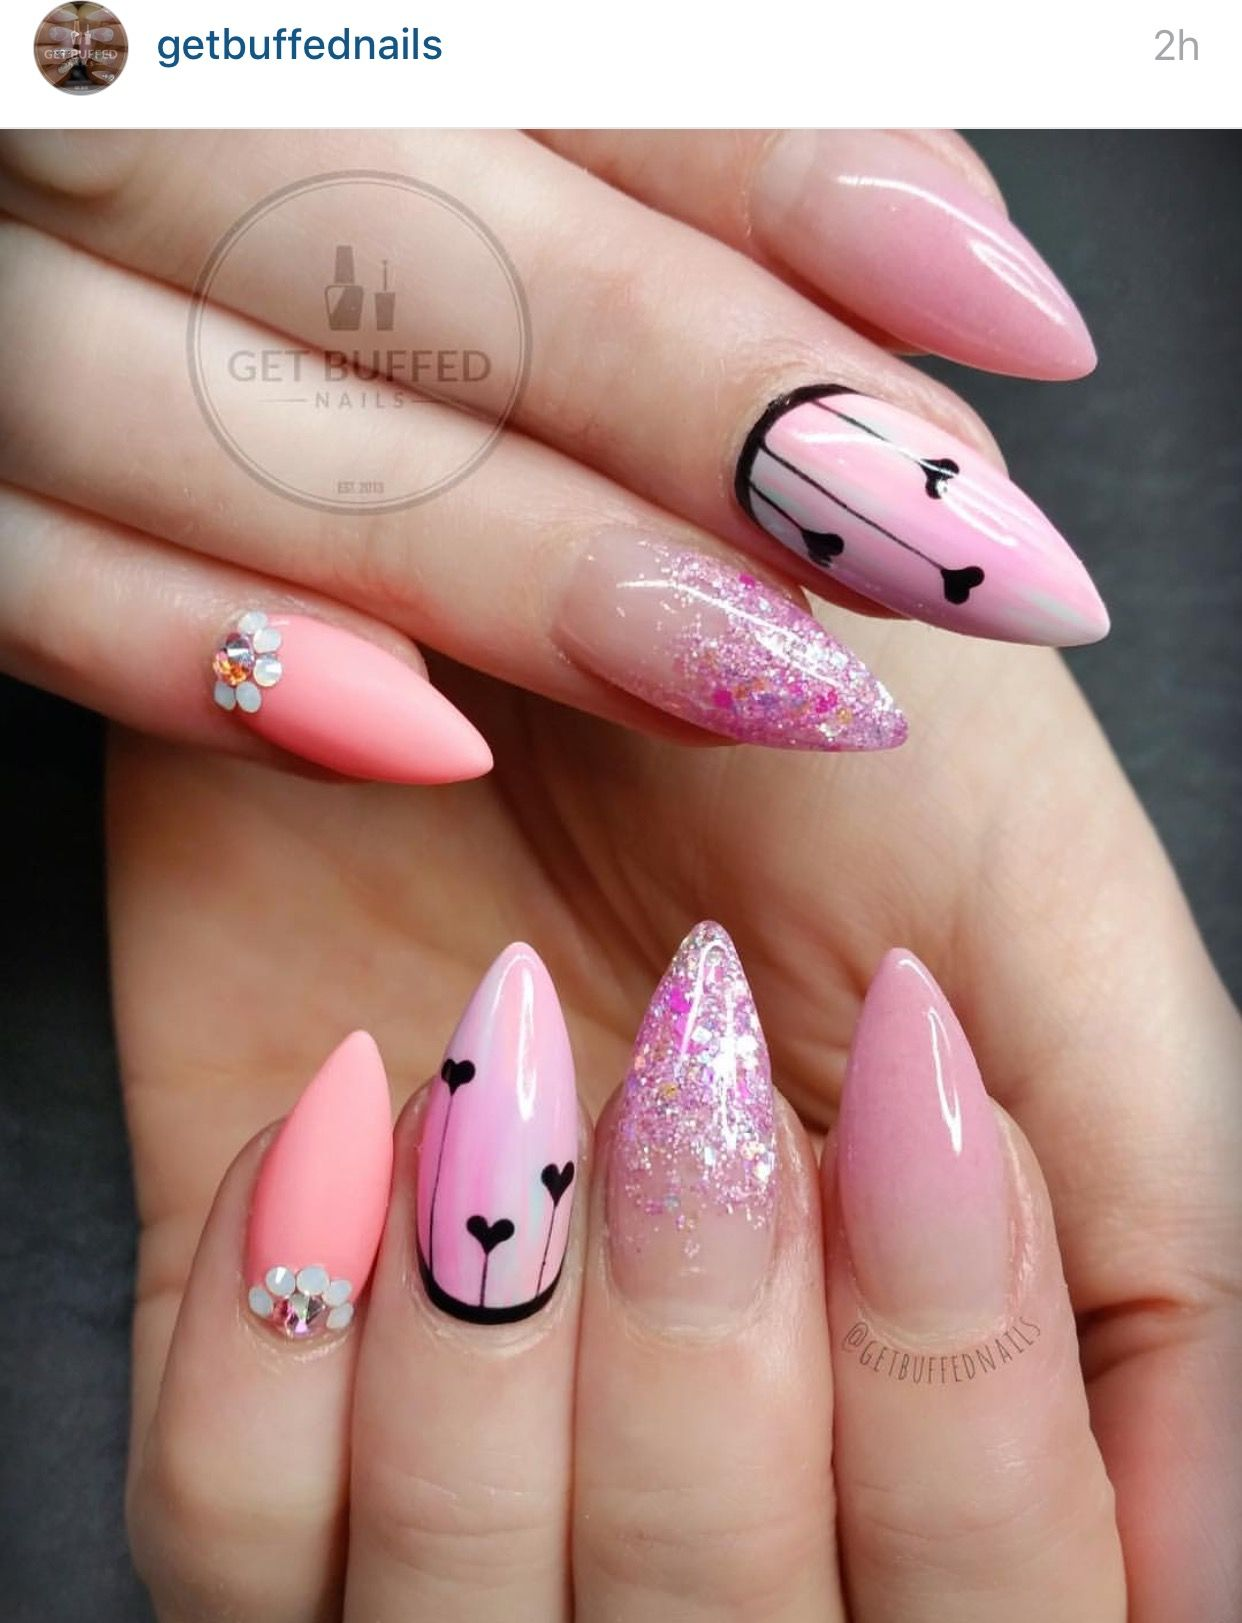 Pin by Jontey Wylie on Nails | Pinterest